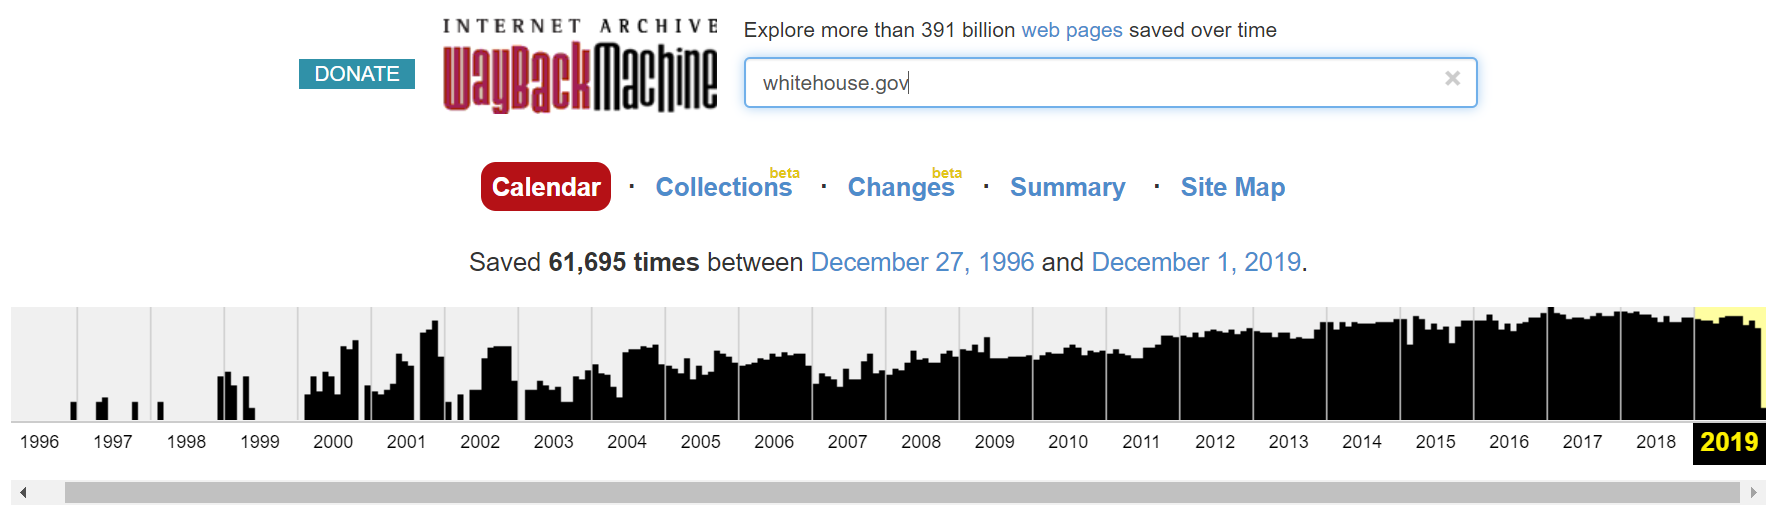 Wayback Machine search for whitehouse.gov